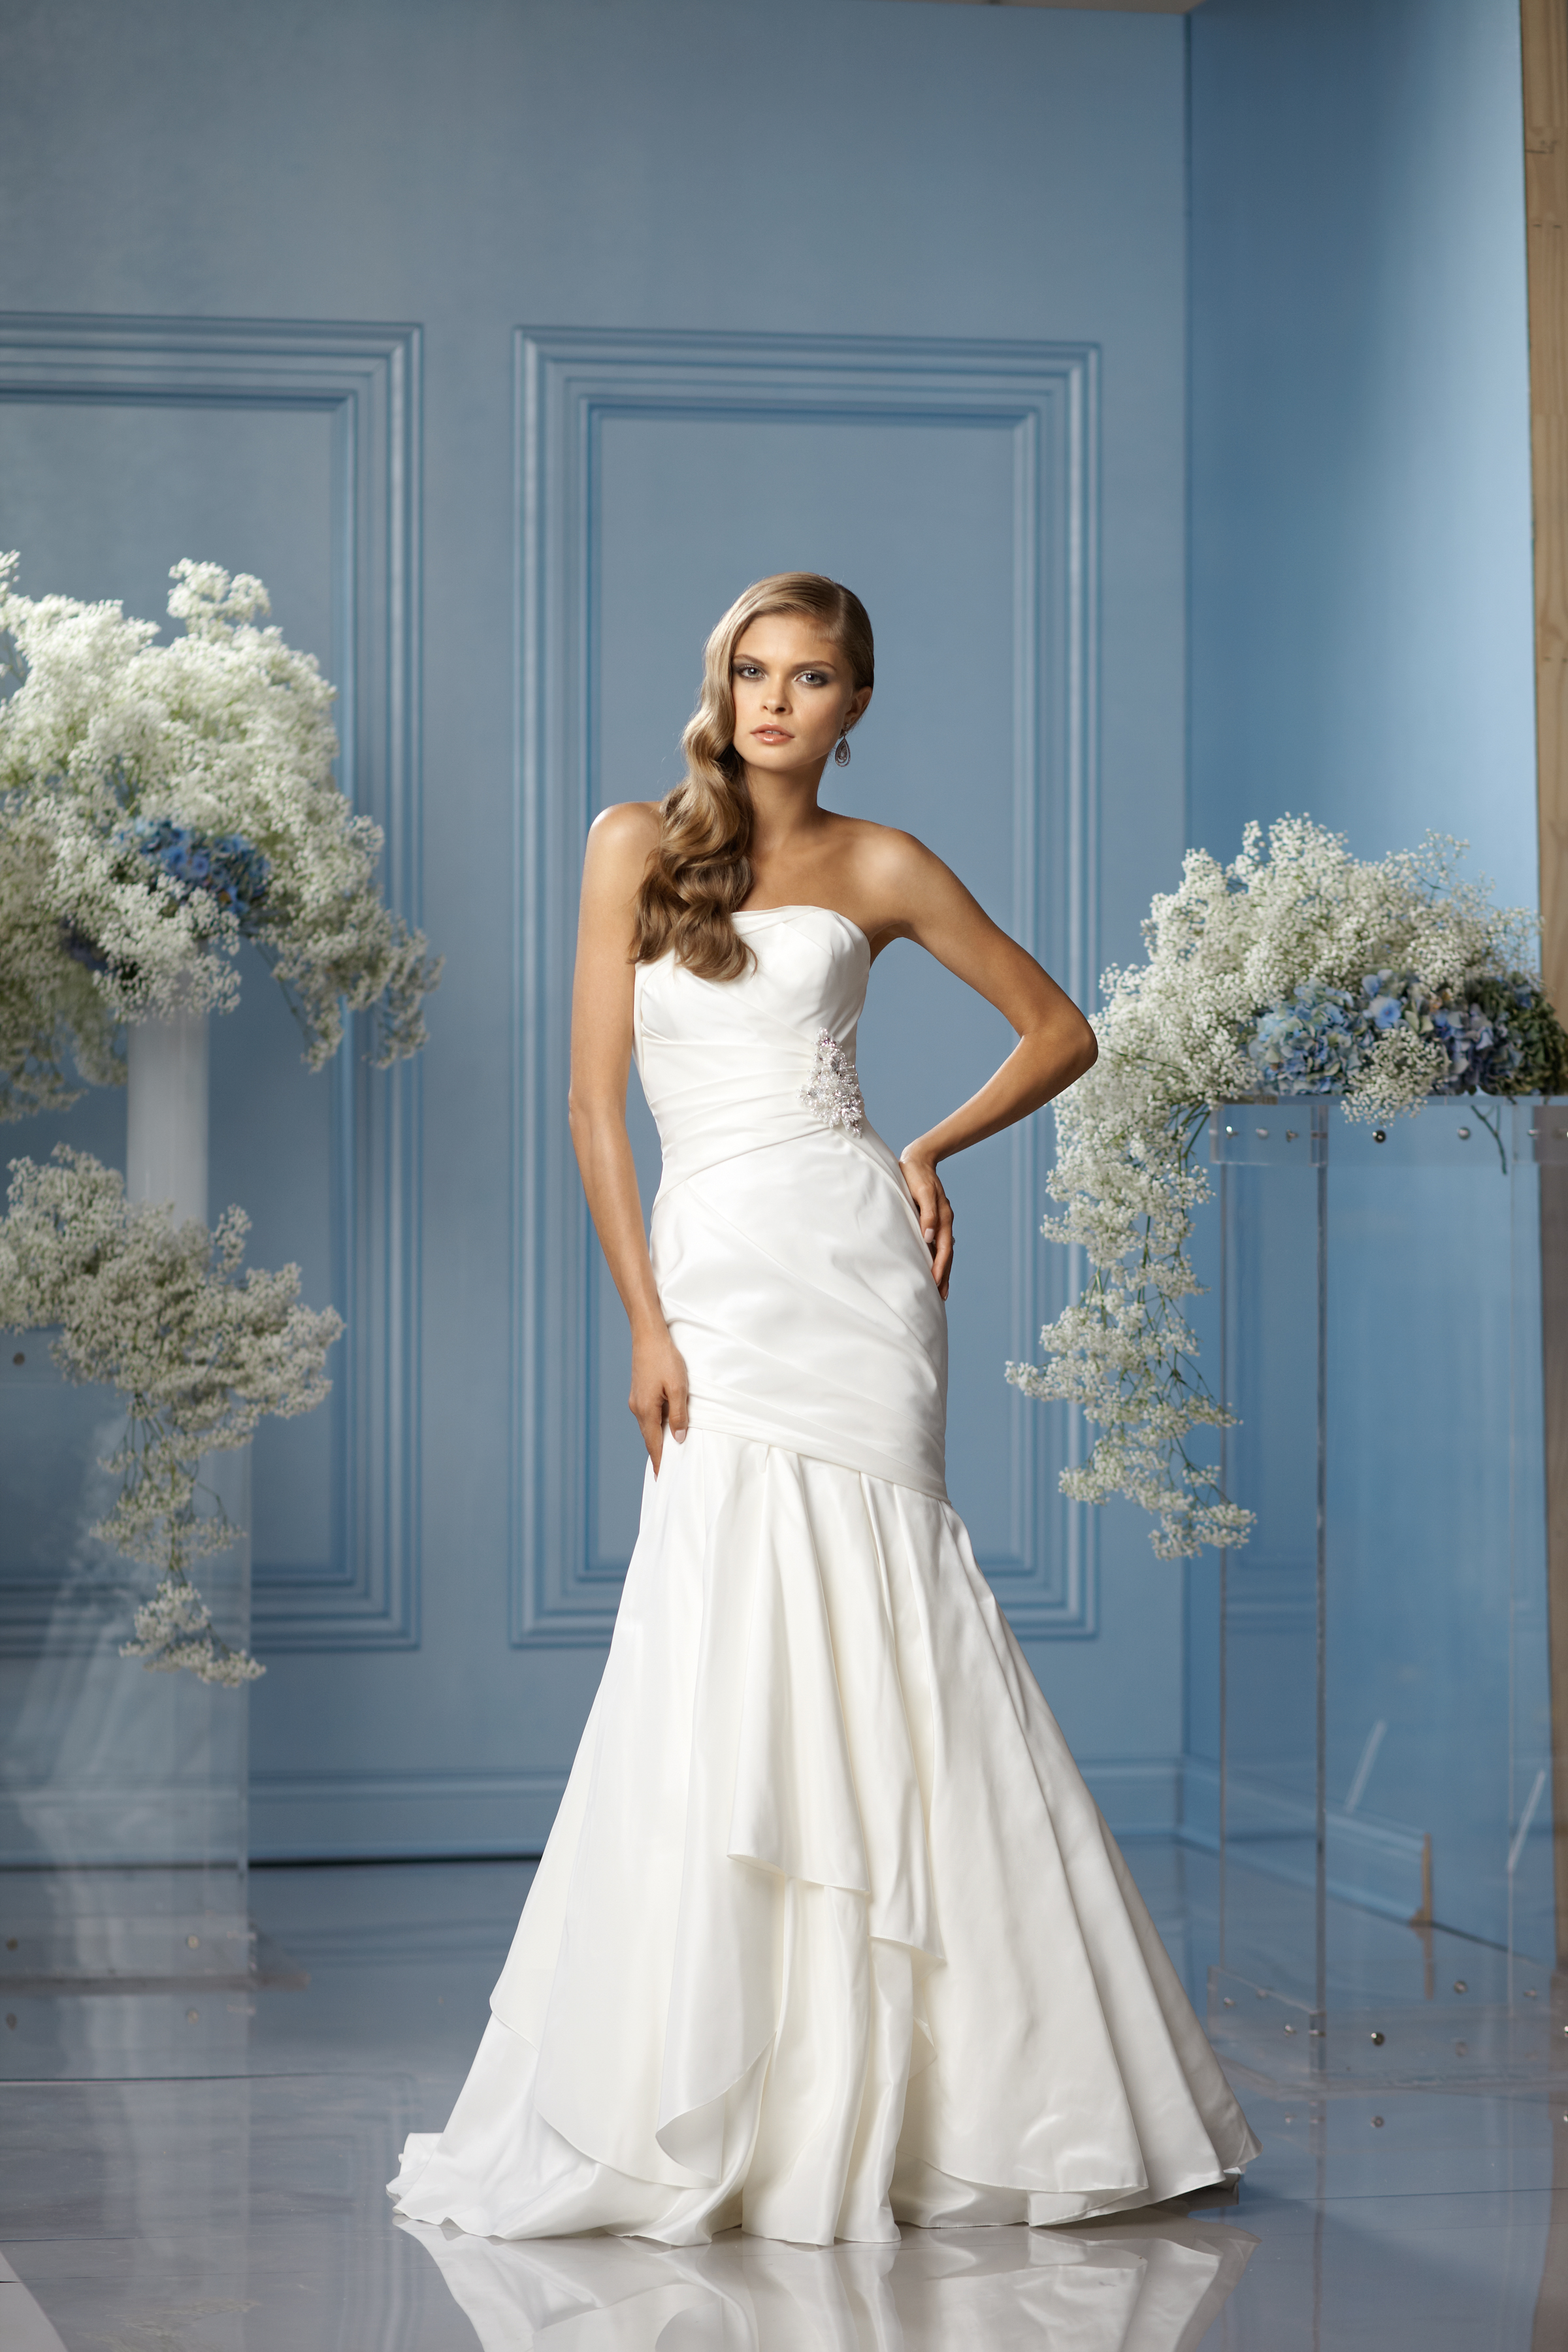 Mermaid Wedding Dresses, Romantic Wedding Dresses, Hollywood Glam Wedding Dresses, Fashion, white, ivory, Summer, Romantic, Strapless, Strapless Wedding Dresses, Beading, Floor, Wedding dress, Silk, Dropped, Taffeta, Sleeveless, Ruching, Mermaid/Trumpet, Sash/Belt, Fit-n-Flare, hollywood glam, Beaded Wedding Dresses, taffeta wedding dresses, trumpet wedding dresses, w too, Silk Wedding Dresses, Summer Wedding Dresses, Floor Wedding Dresses, Sash Wedding Dresses, Belt Wedding Dresses